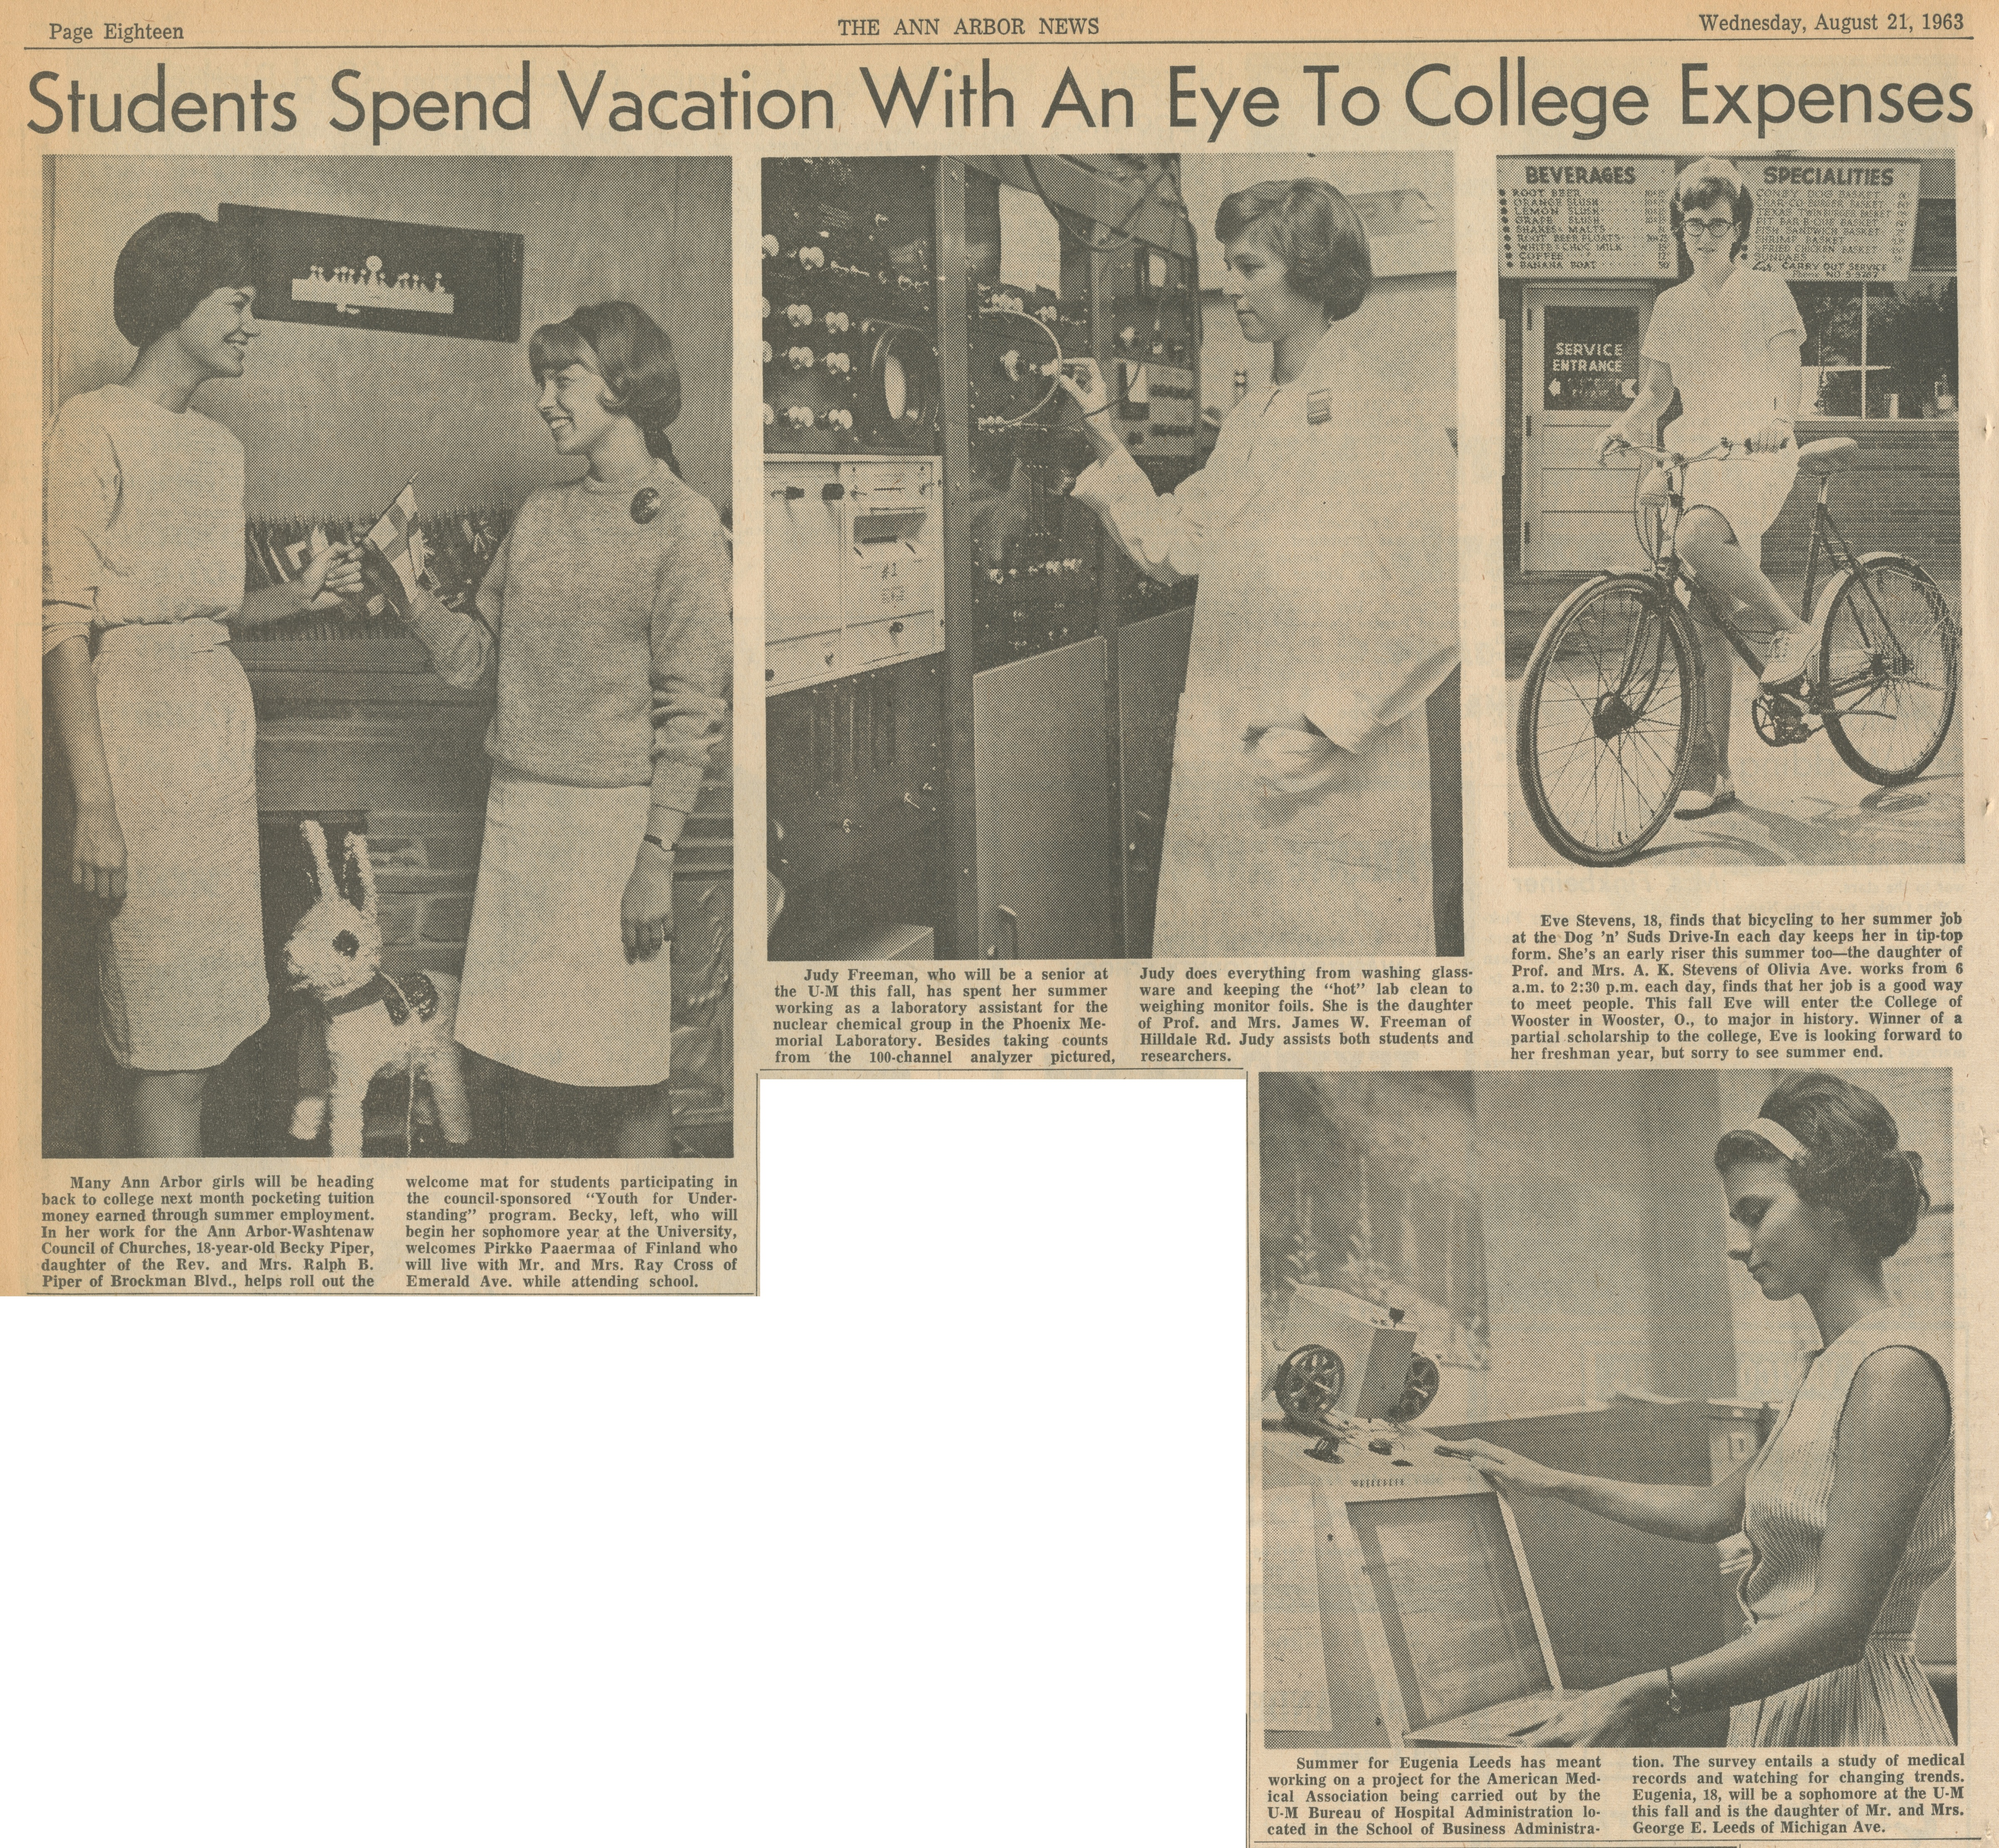 Students Spend Vacation With An Eye To College Expenses image